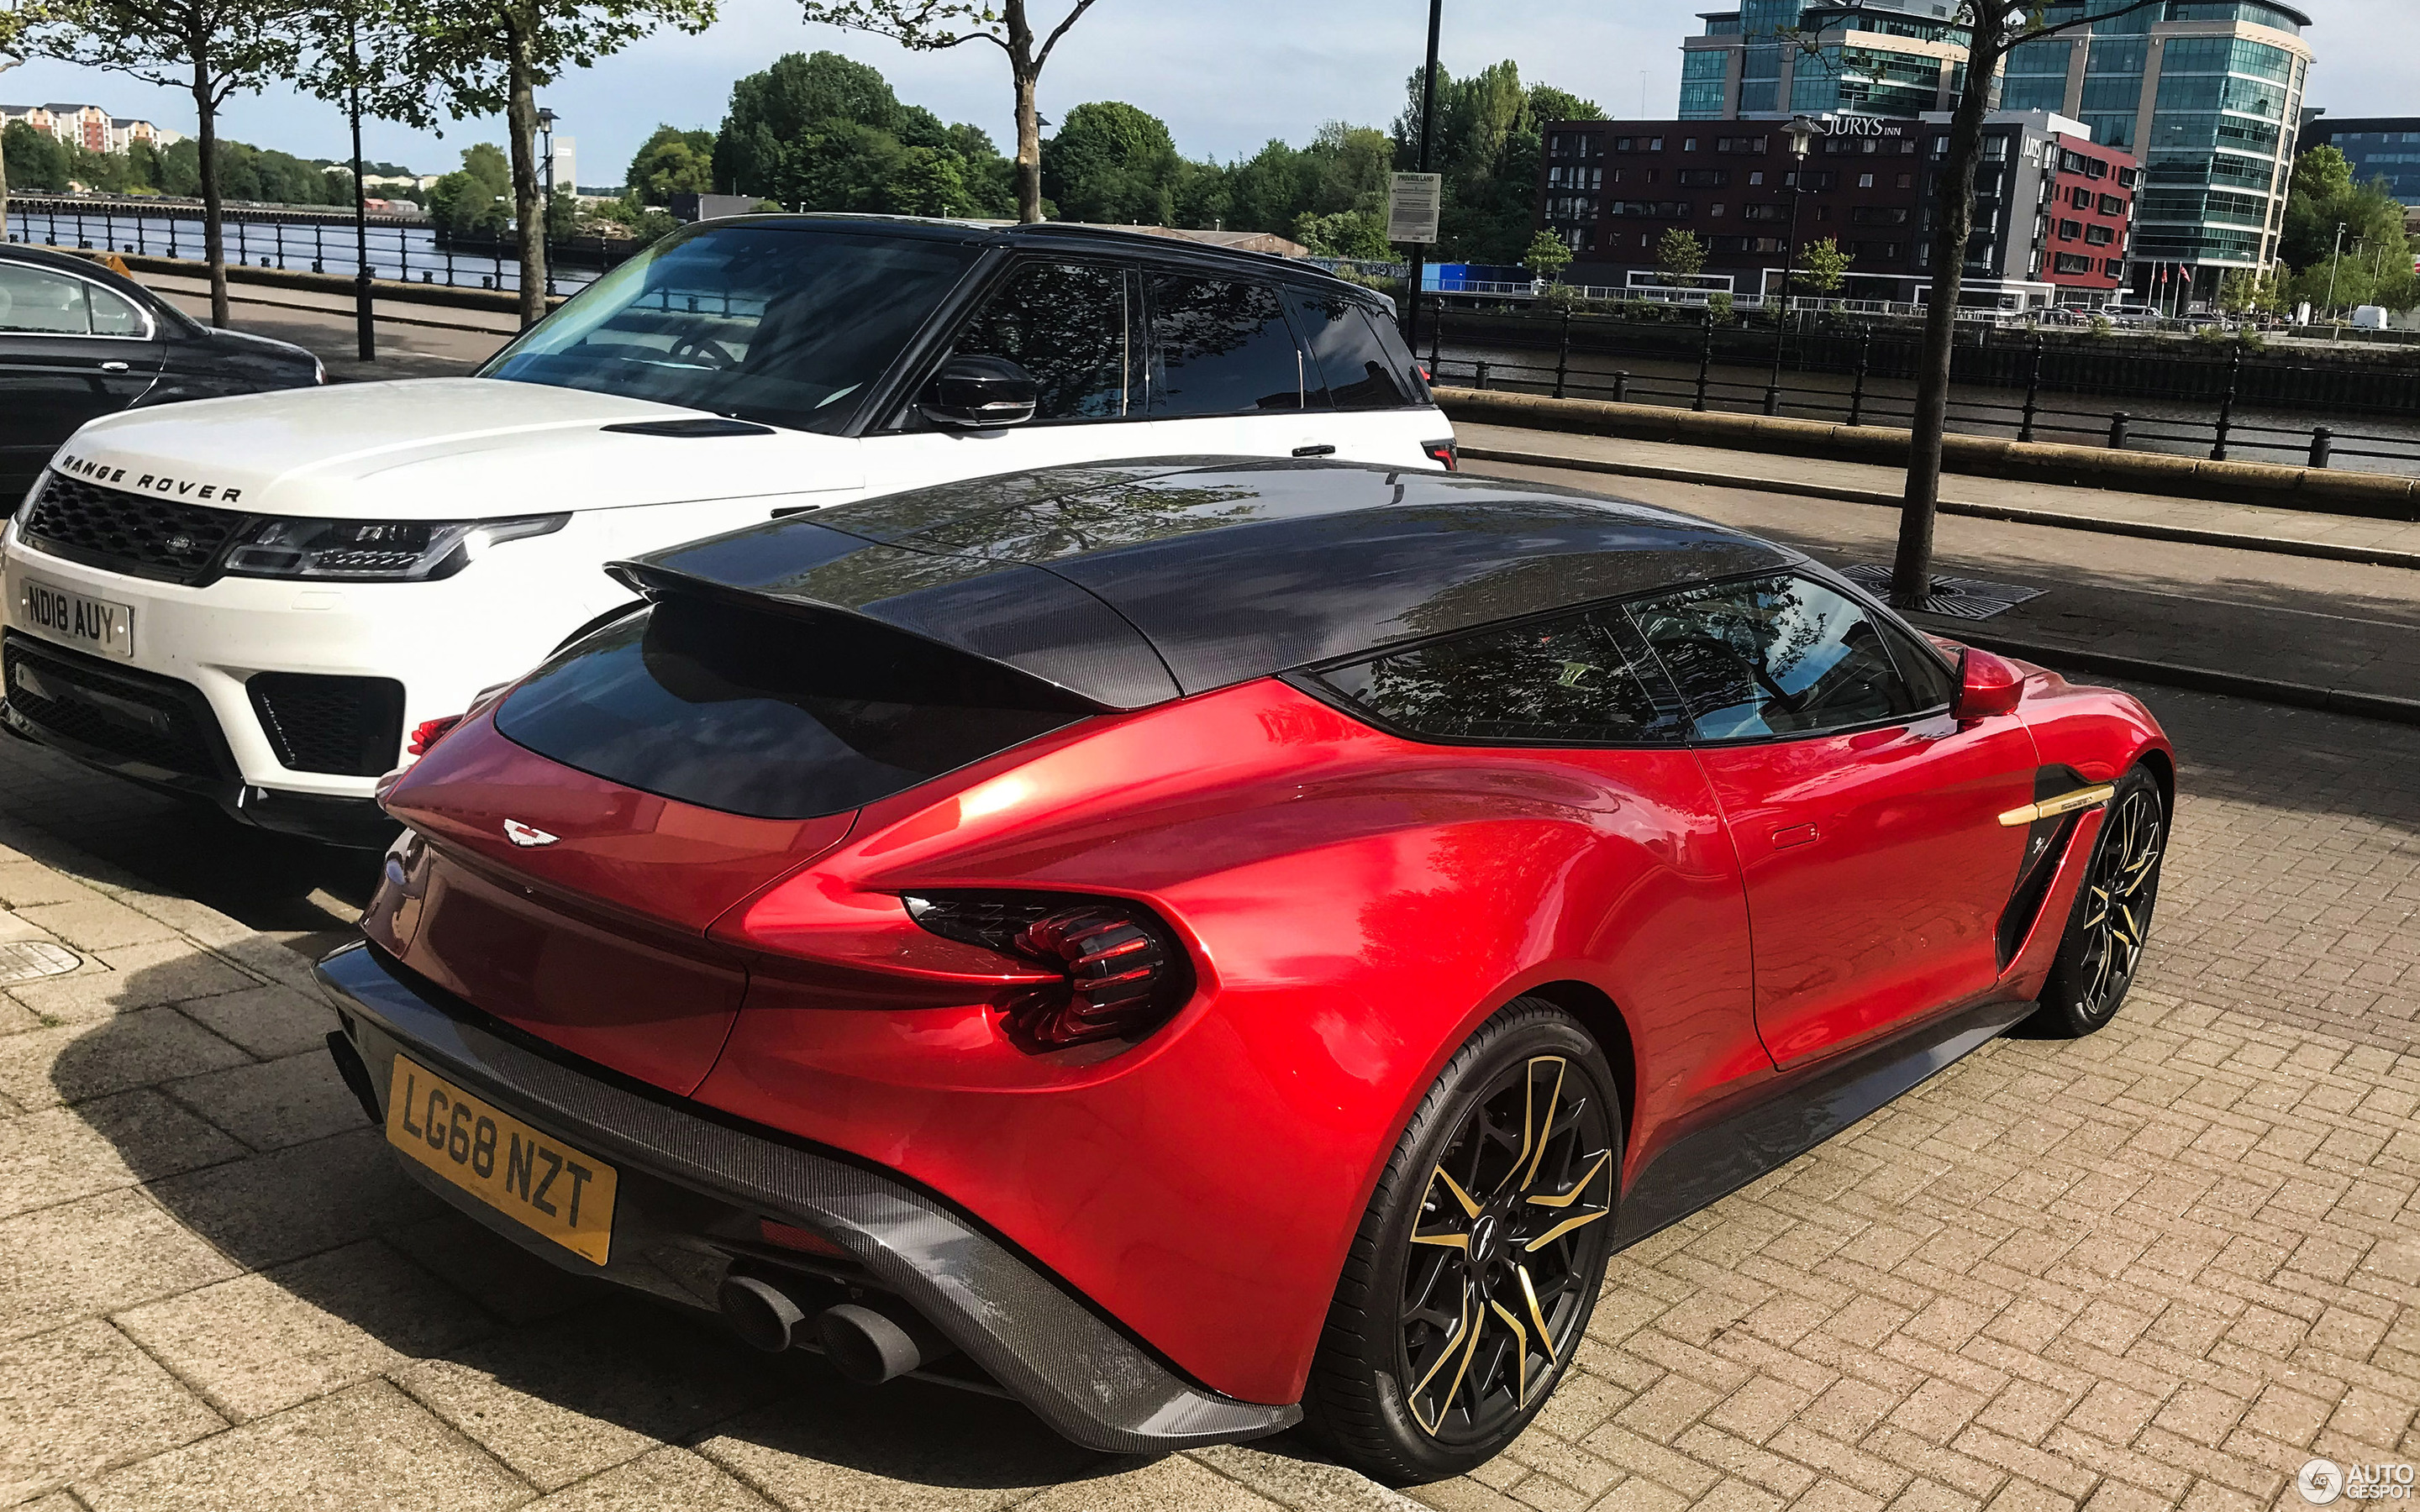 Aston Martin Vanquish Zagato Shooting Brake 26 May 2019 Autogespot